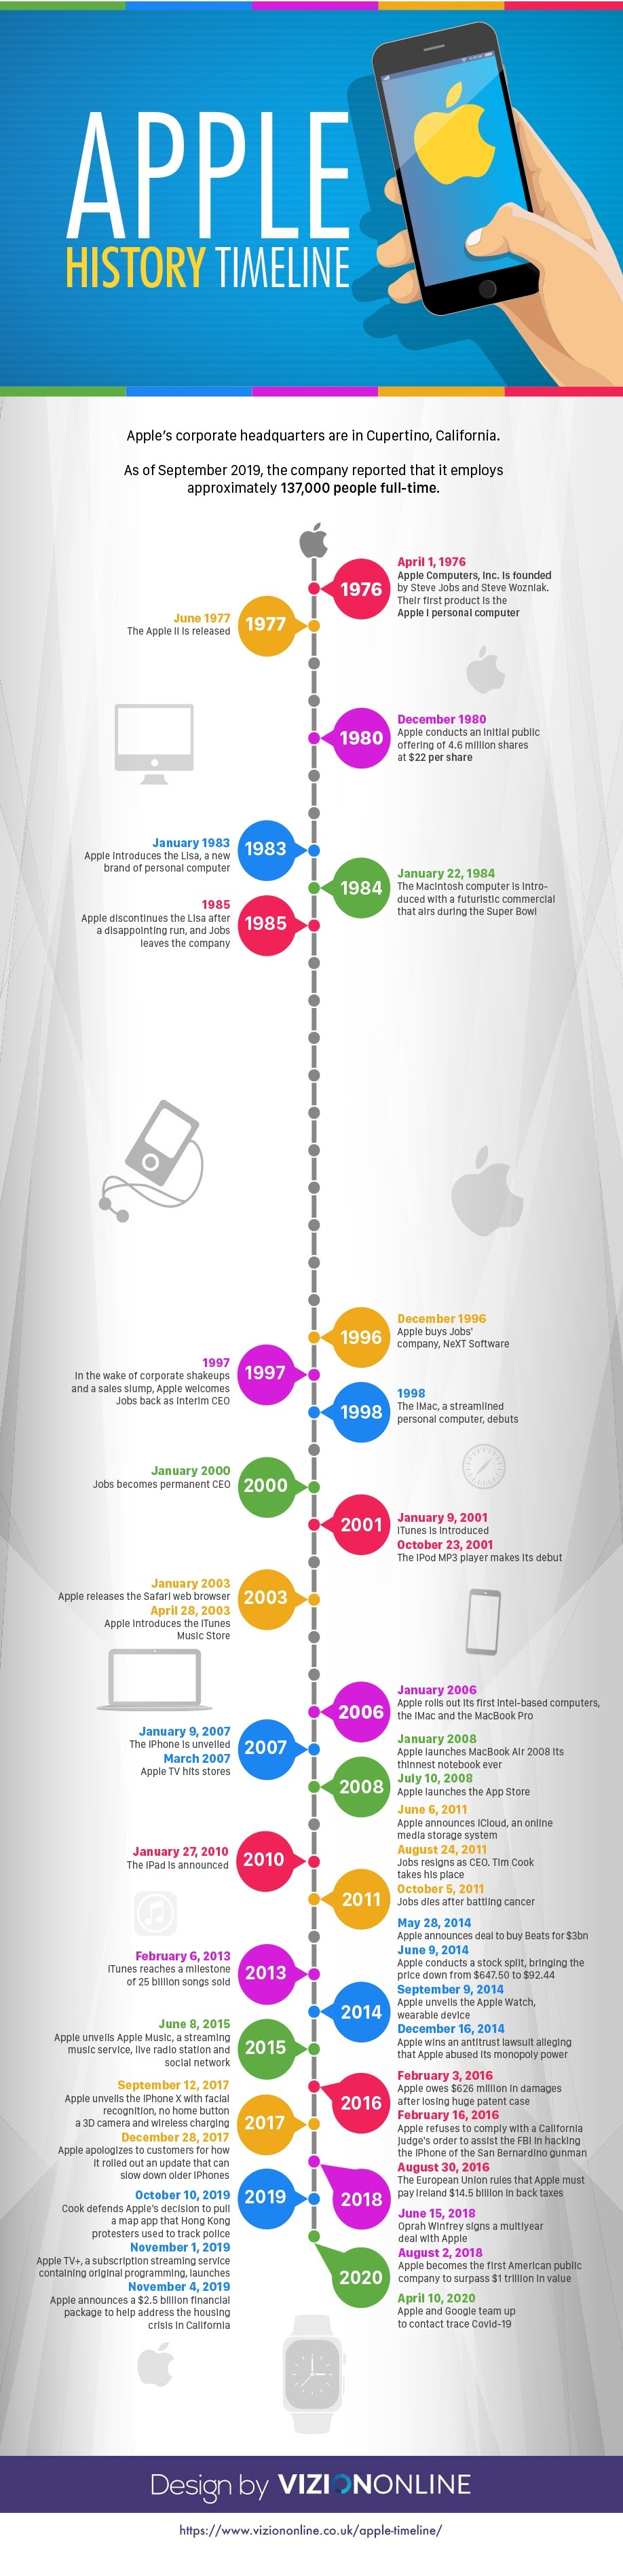 Timeline of Apple 's History #infographic